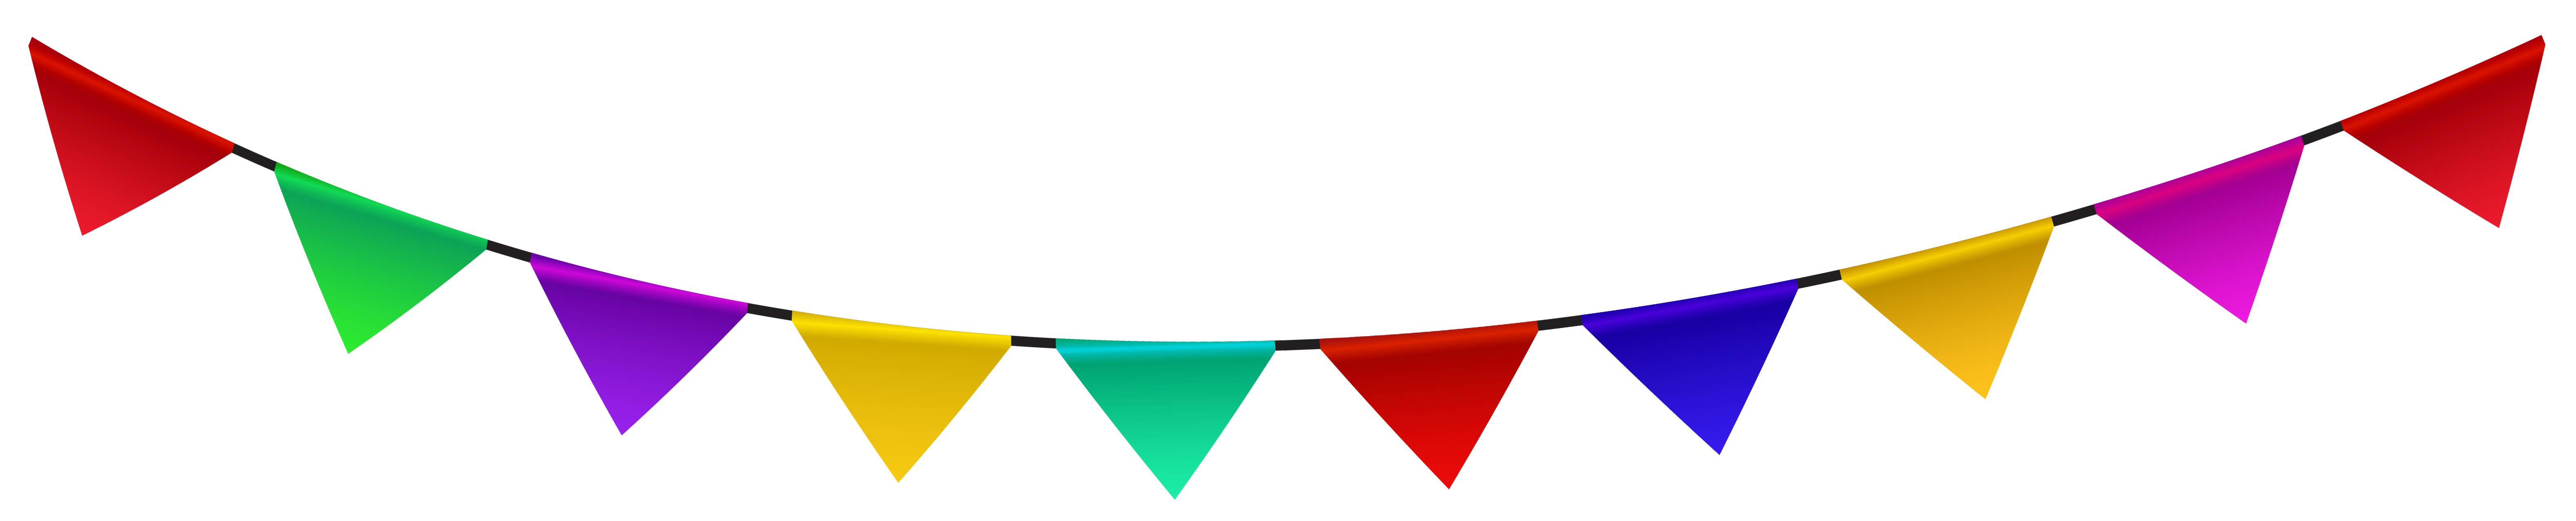 Free Transparent Streamers Cliparts, Download Free Clip Art.